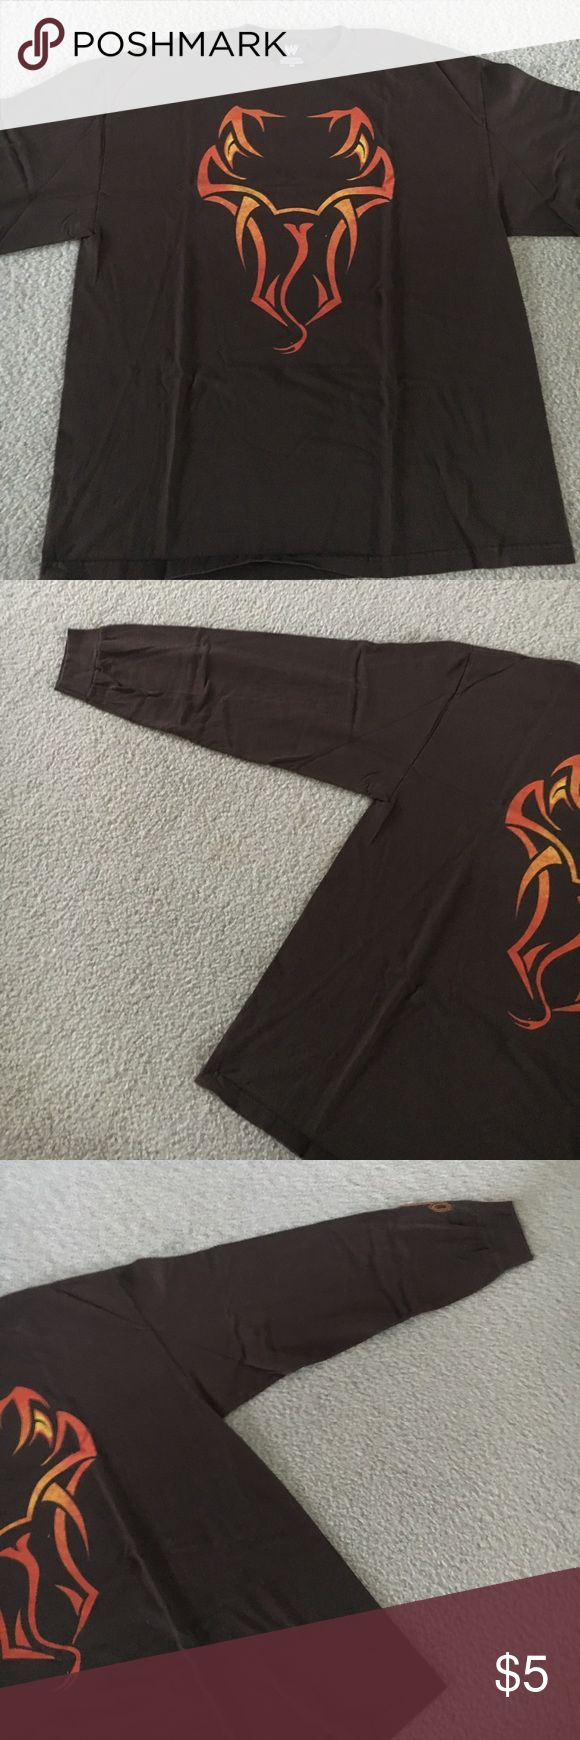 WWE Randy Orton The Viper Long Sleeve Shirt Men 2X Authentic WWE merchandise.  No rips, tears or stains, from a smoke free home.  Worn and washed, a bit faded but still has plenty of wear.  Old school design! WWE Shirts Tees - Long Sleeve